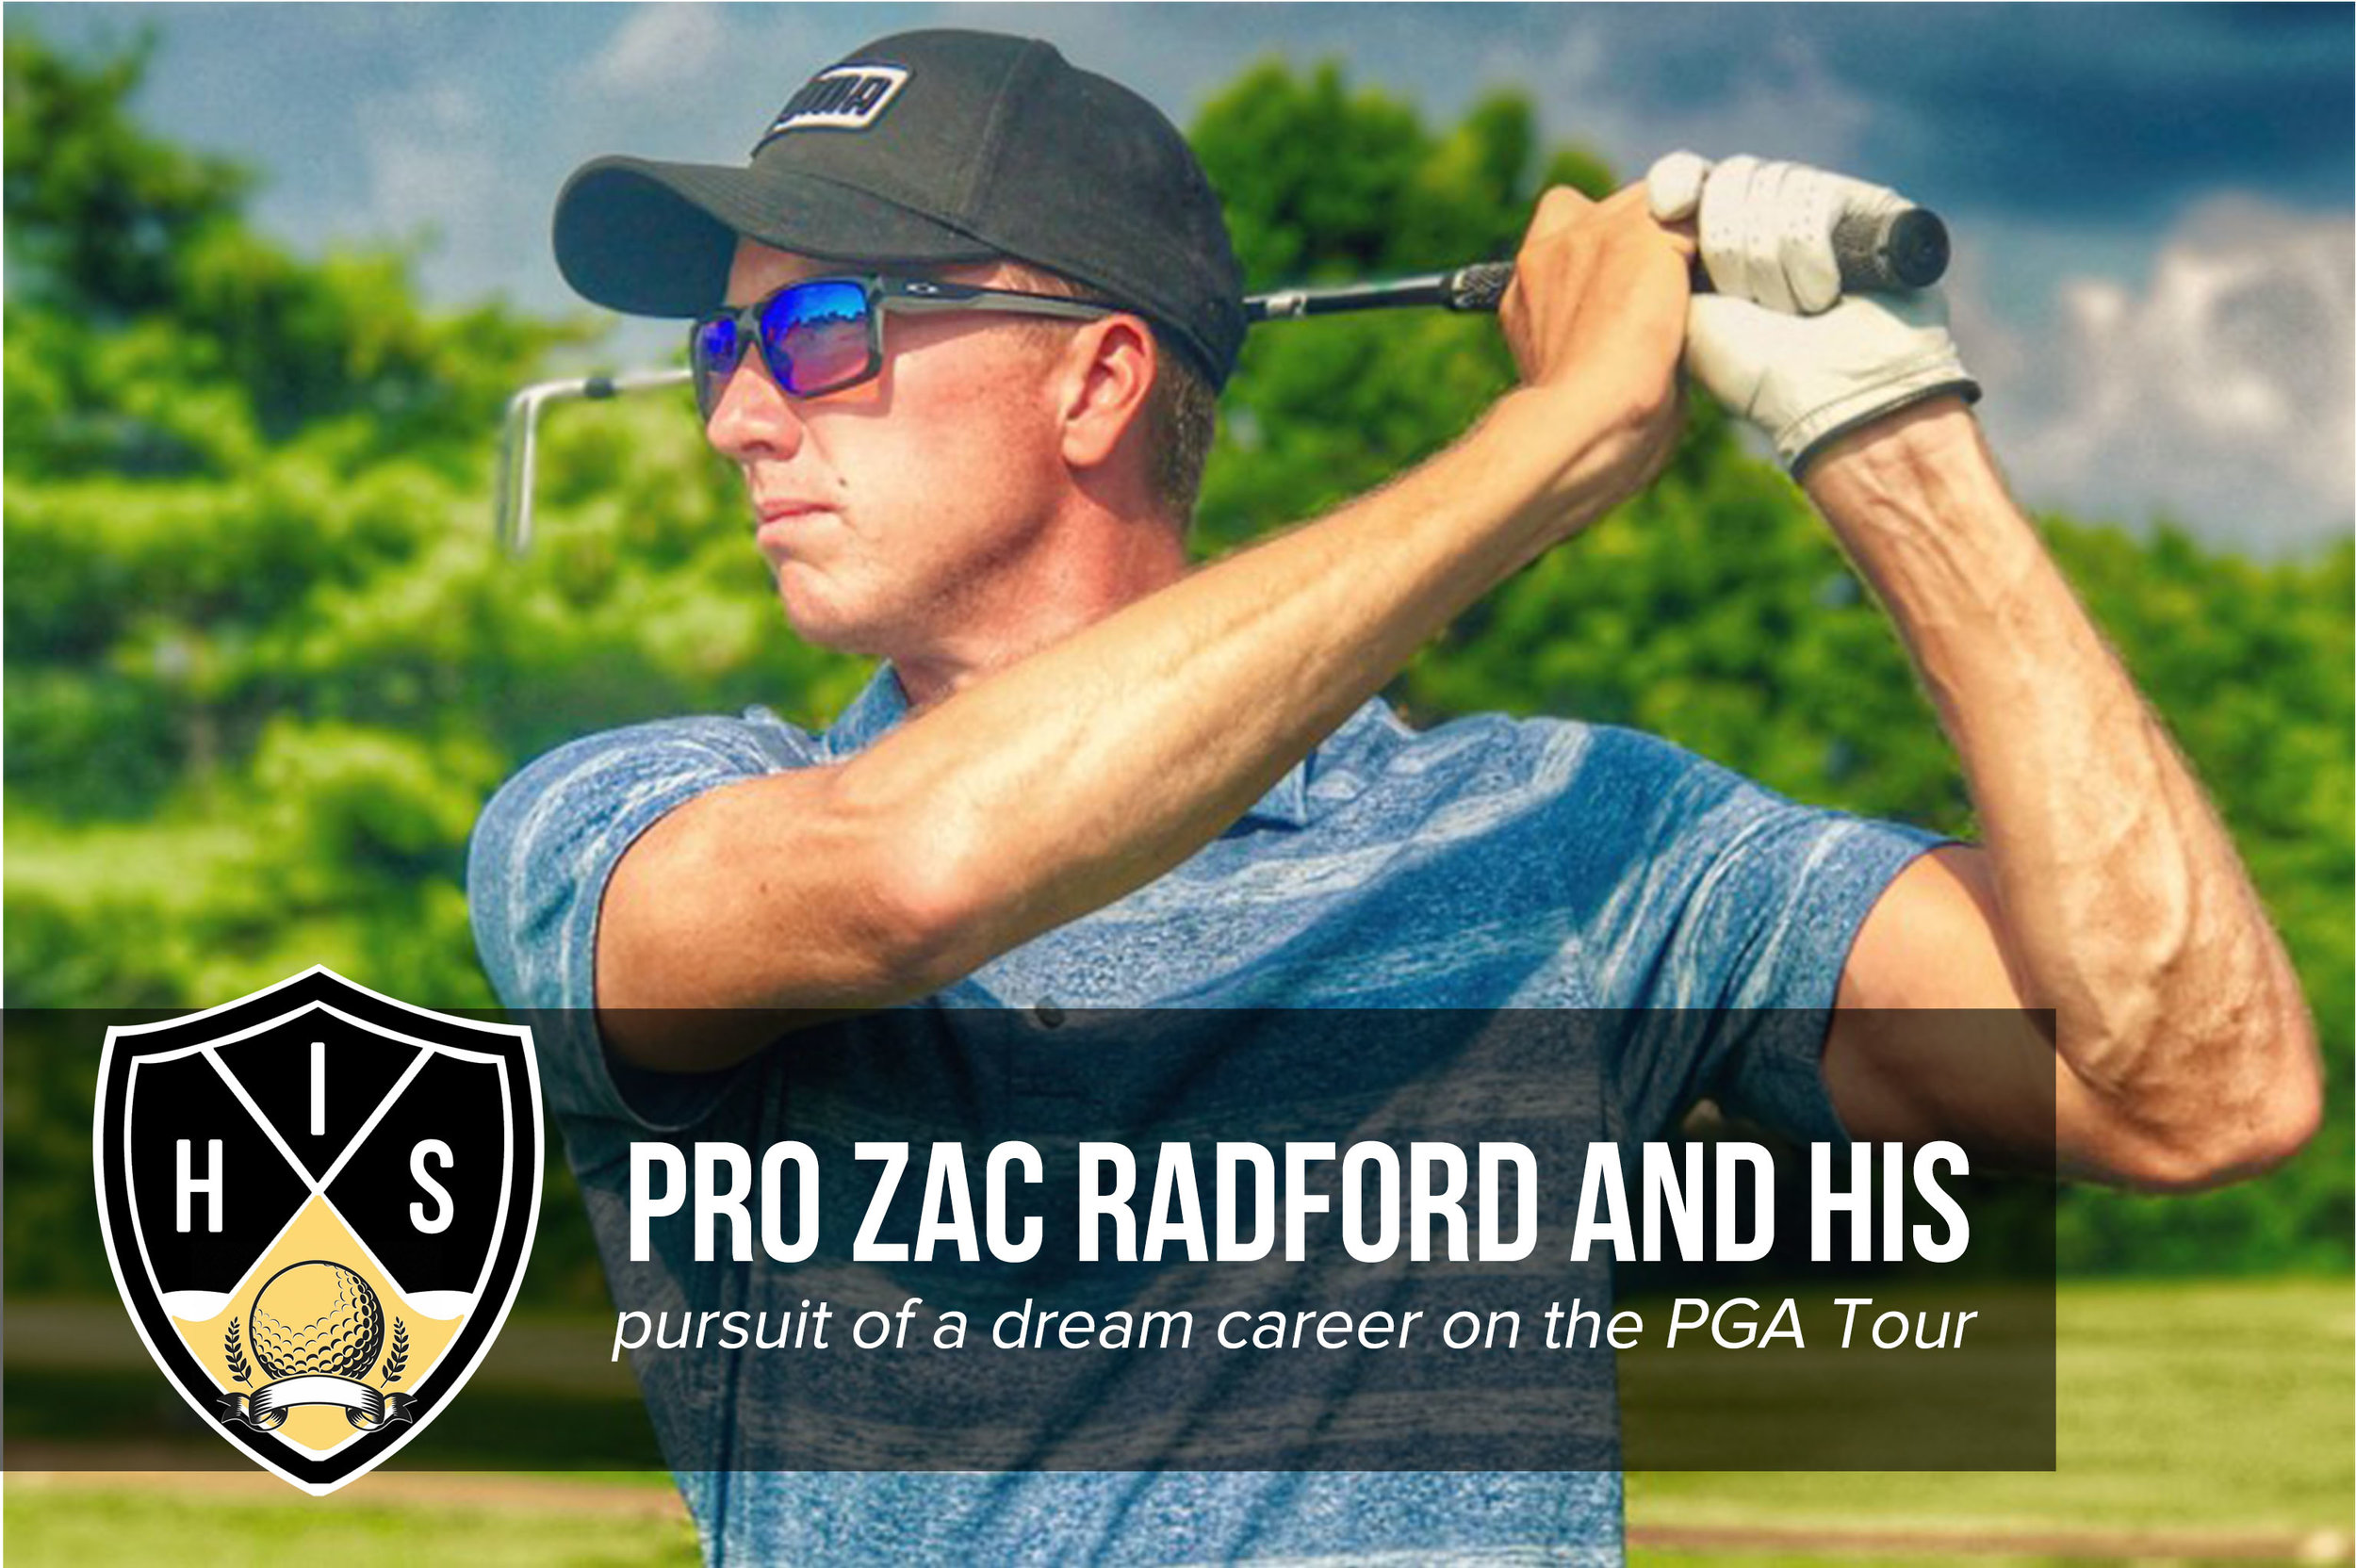 Zac Radford staring down another solid golf iron shot